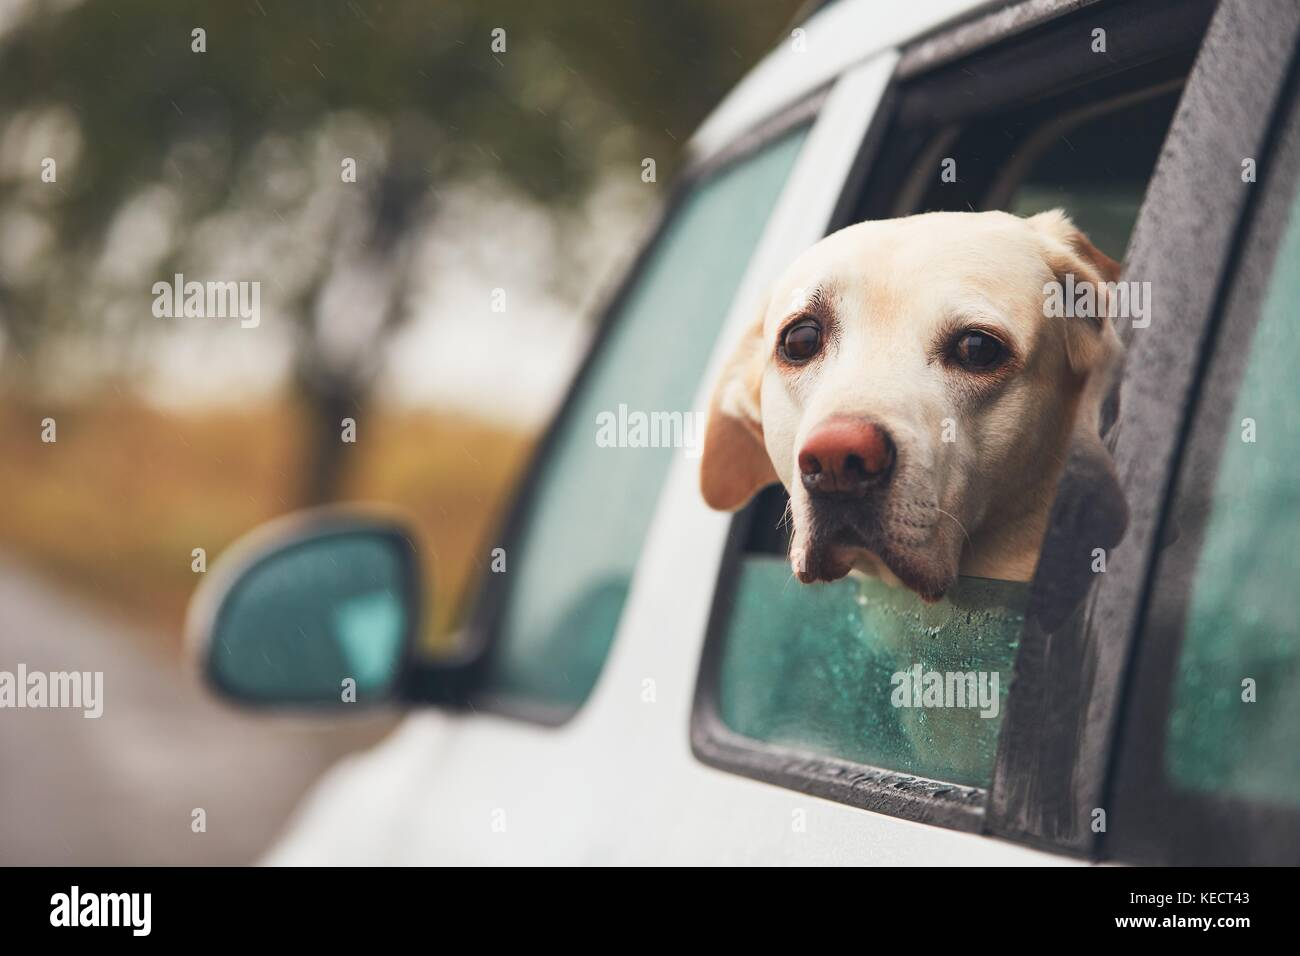 Dog (labrador retriever) looking out of a car window on a rainy day. - Stock Image